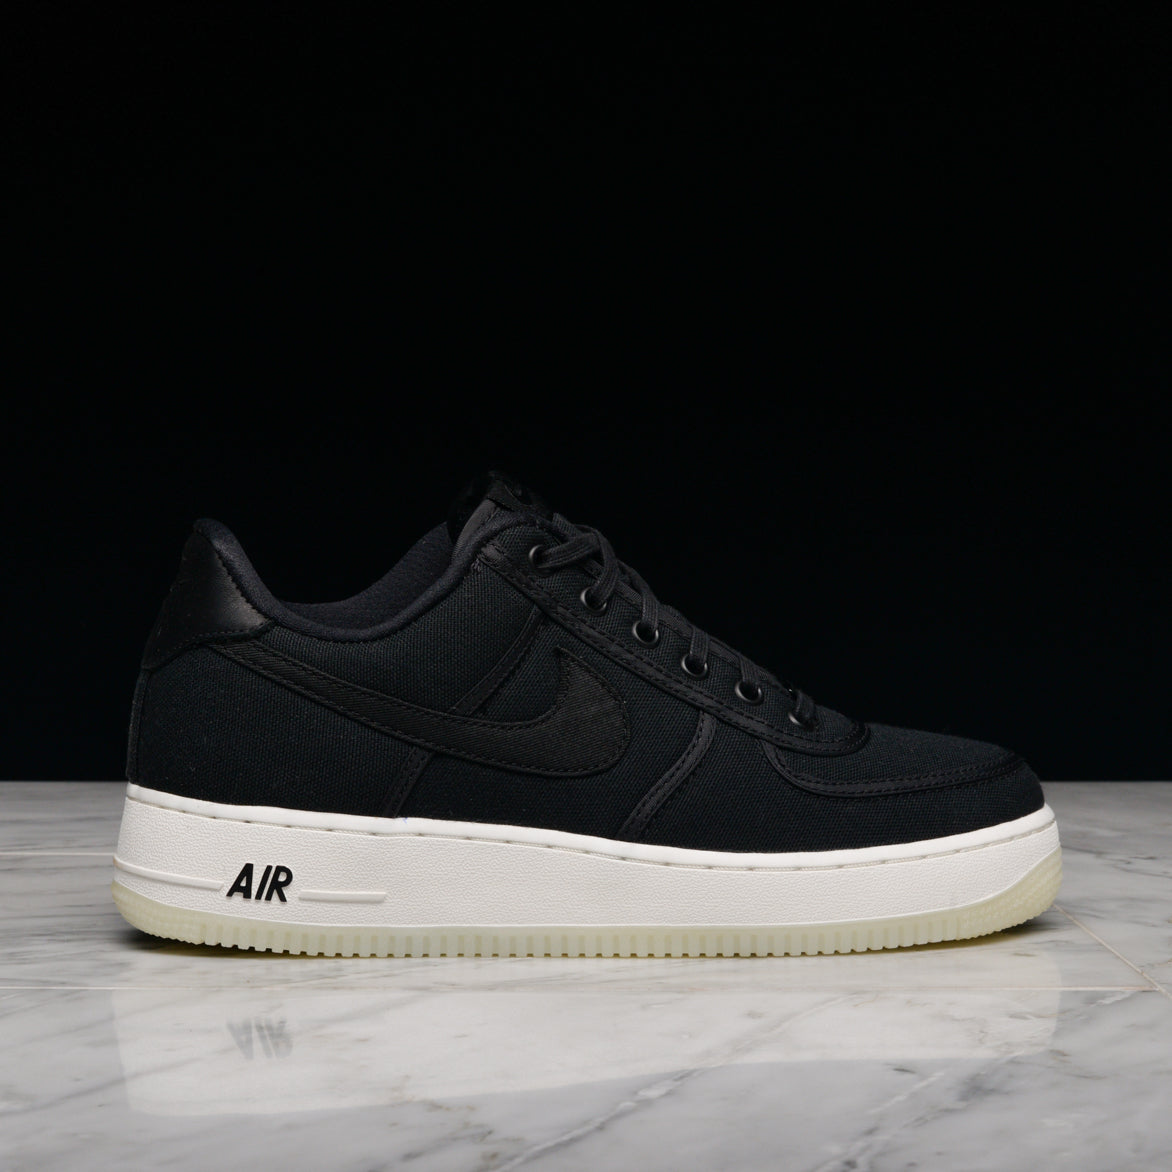 1d6bf73898f AIR FORCE 1 LOW RETRO QS